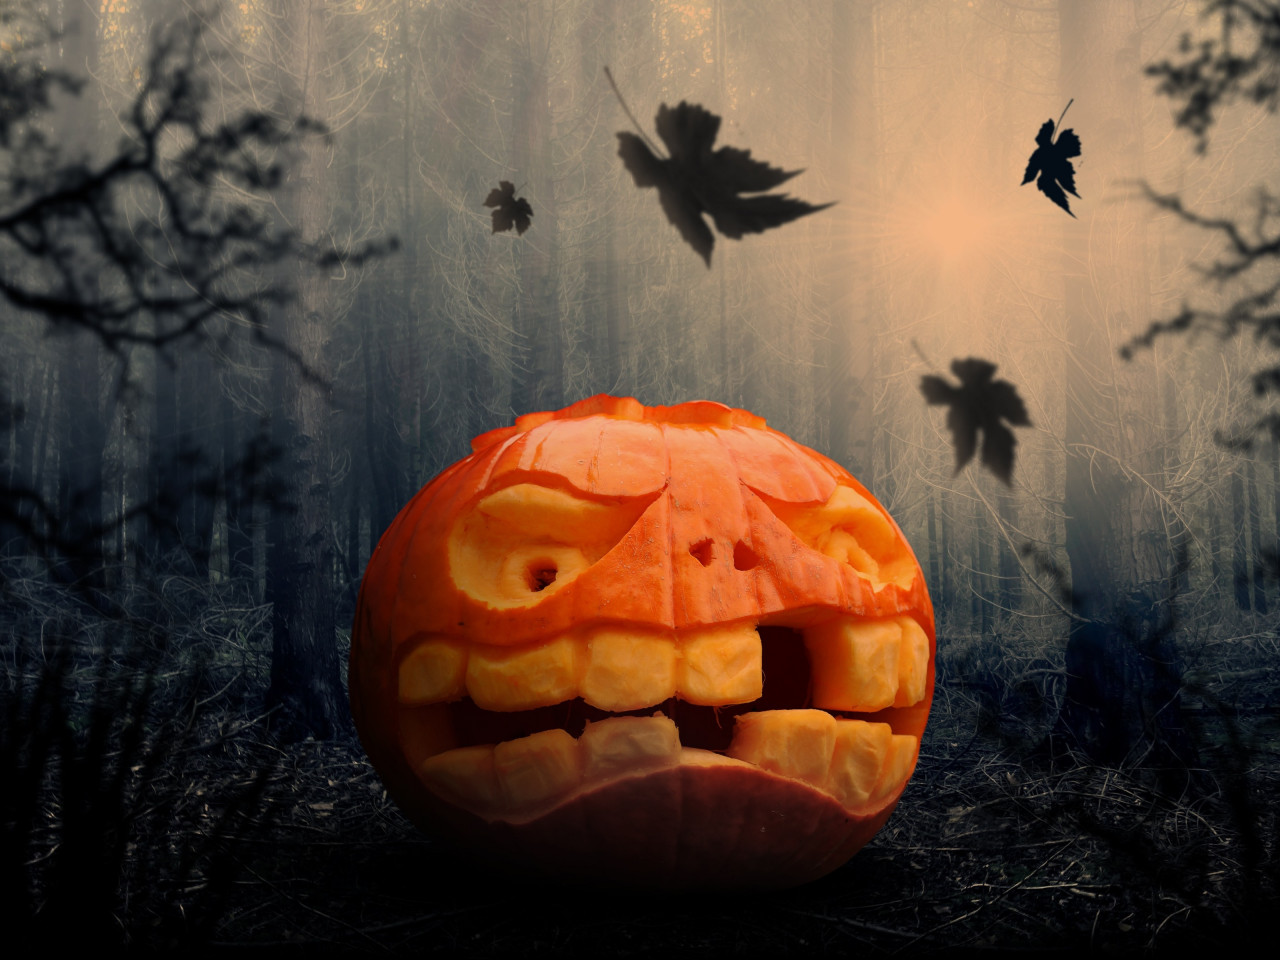 Halloween pumpkin wallpaper 1280x960